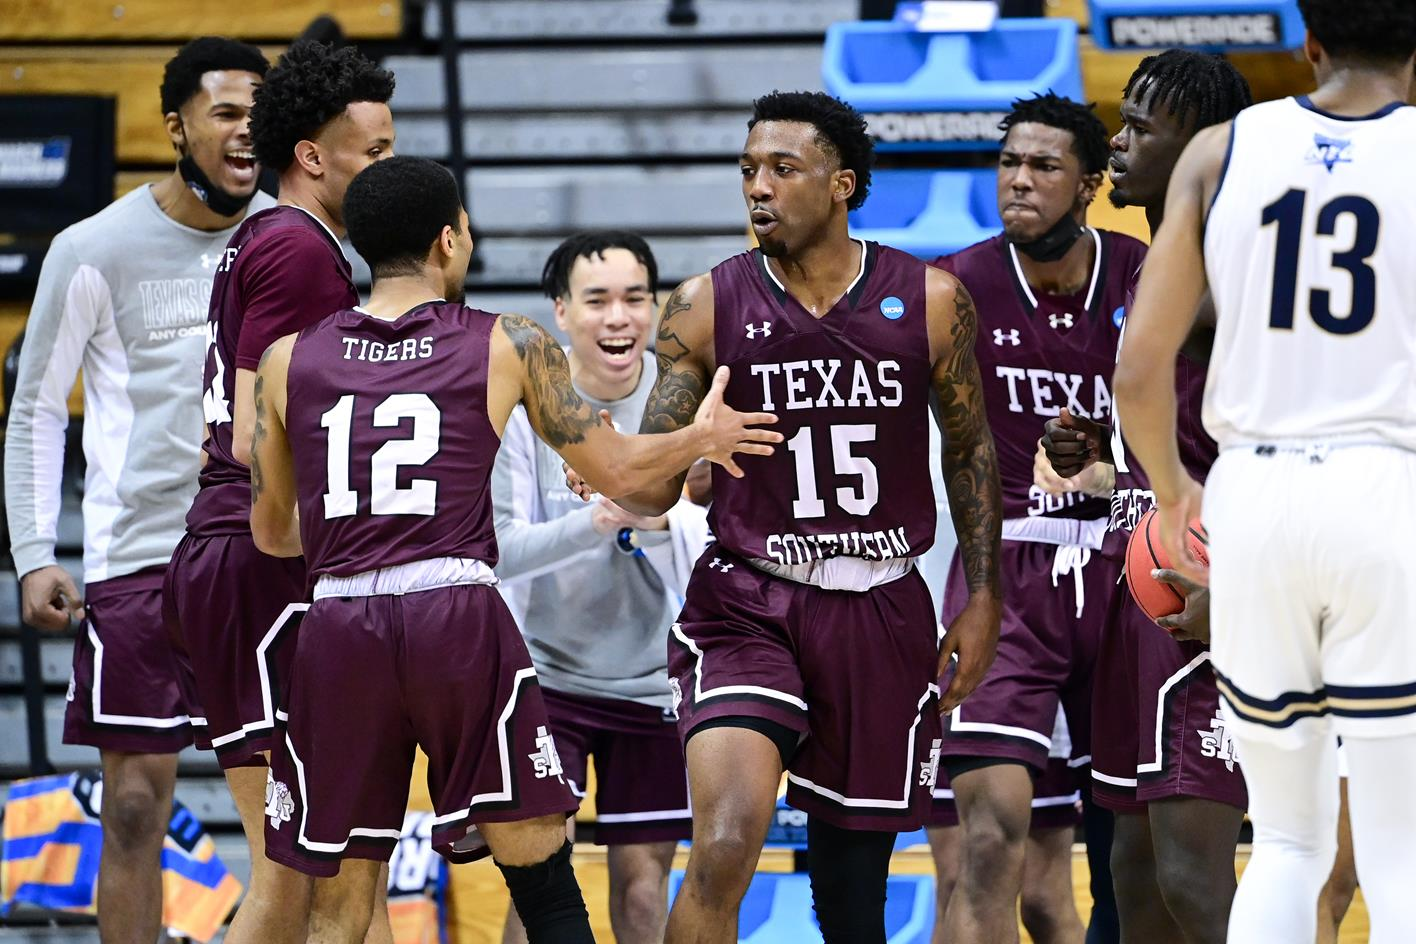 Tigers Turn Up The Heat In 2nd Half To Earn 2nd NCAA Win